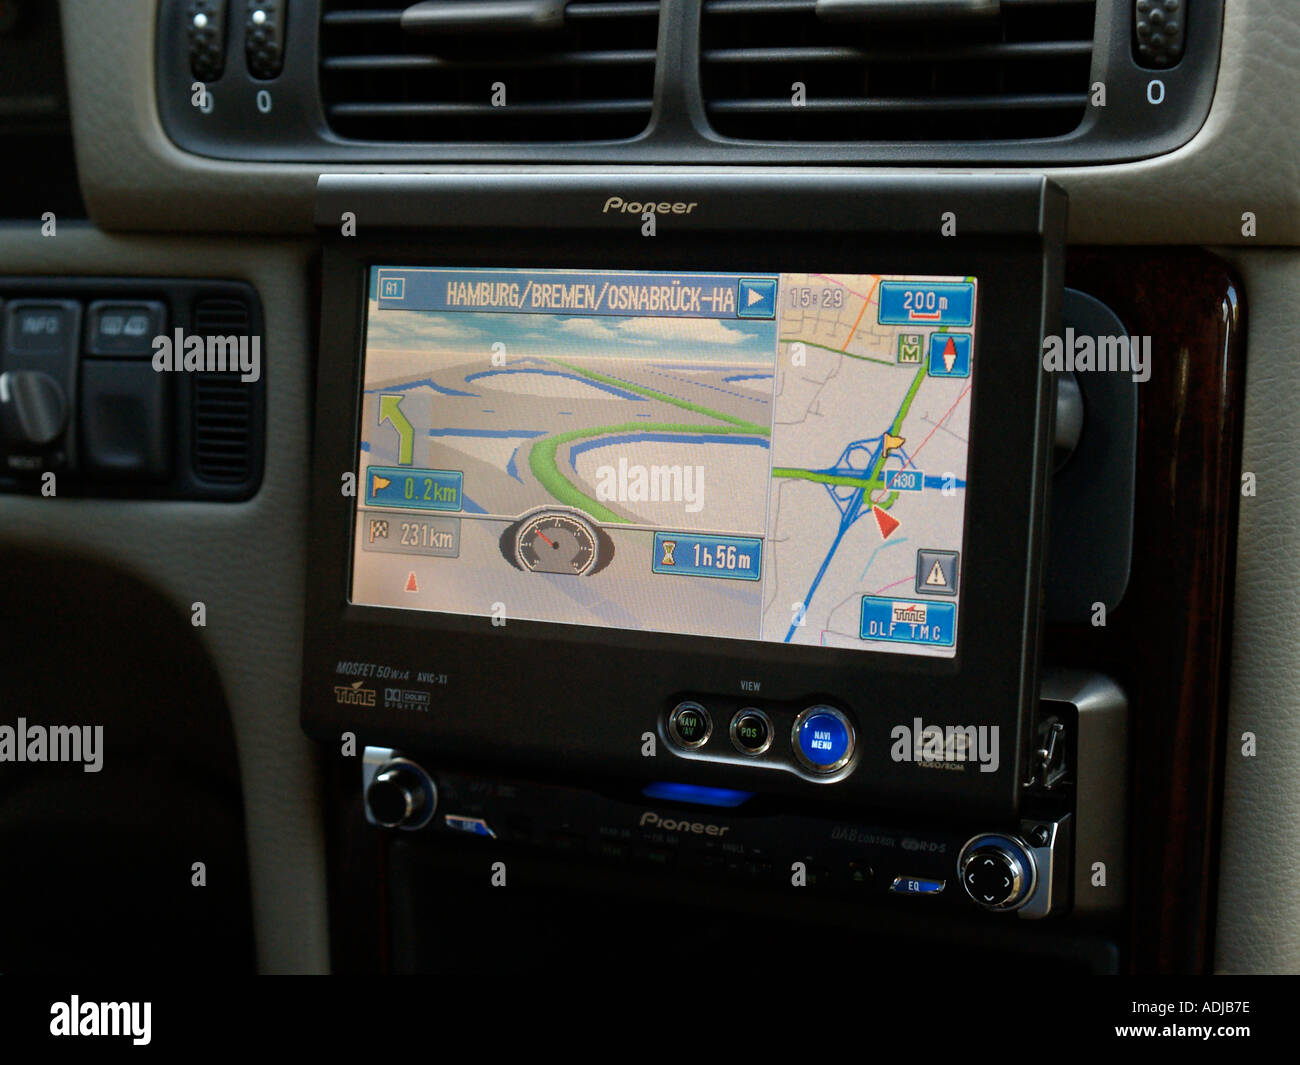 Pioneer retractable DVD in car GPS navigation system showing a highway near Hamburg Germany on screen - Stock Image